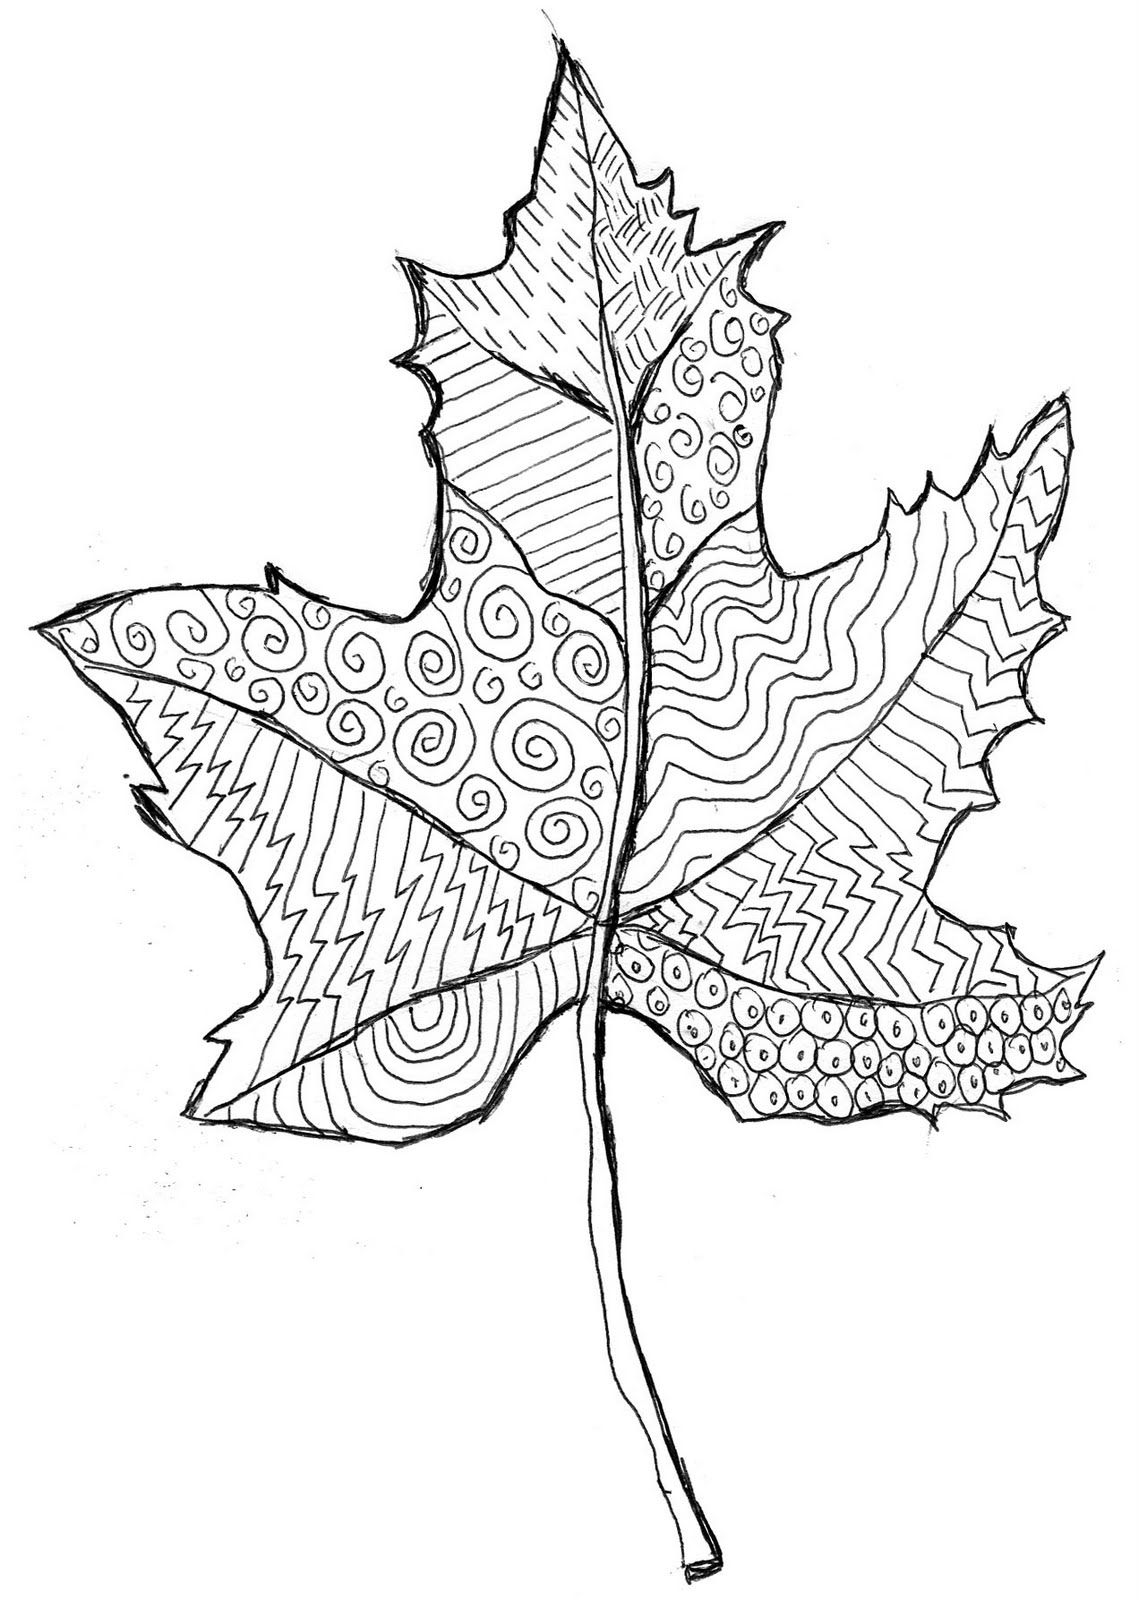 Line Pattern Leaf Art Projects For Kids You Can Do A Similar Thing Using Piece Of Paper Folded And Re Opened To Create About 8 Sections Separated By The